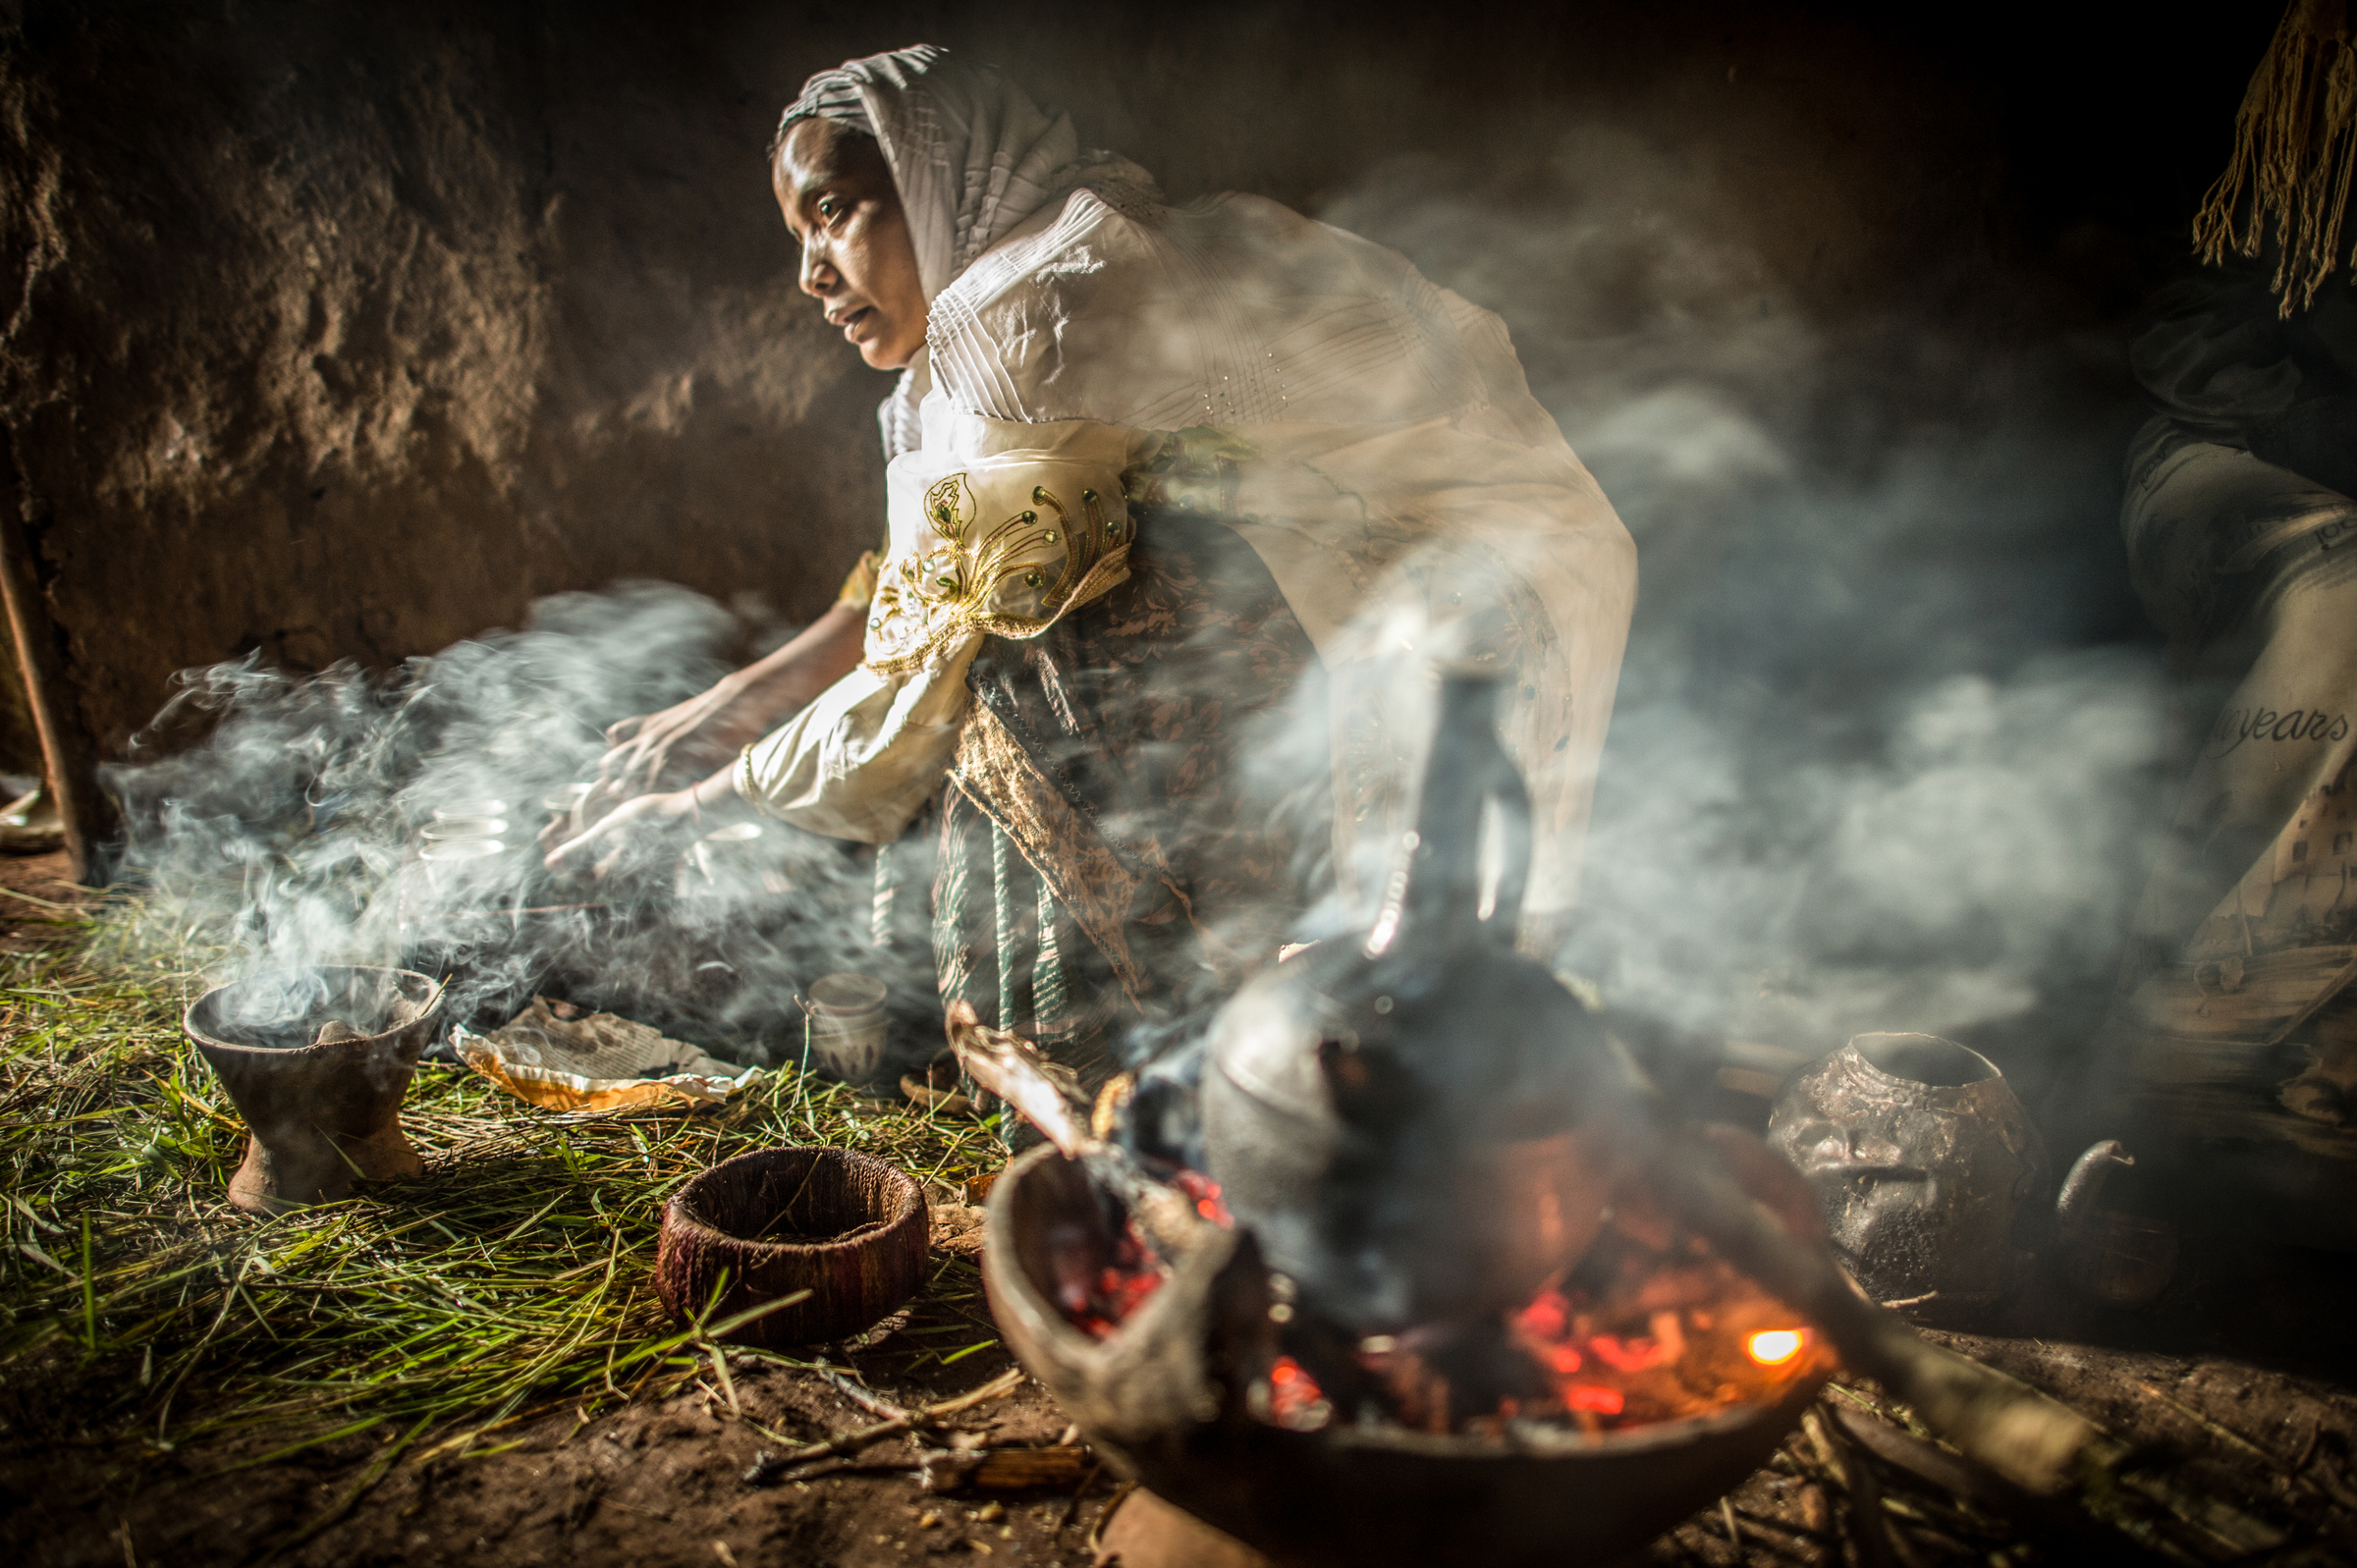 Ramla Sharif  roasts coffee inside her home in the village of Choche in Ethiopia. Legend has it this is the birthplace of coffee. The region is home to the largest pool of genetic diversity in the world of coffee. It is home to more genetic diversity in coffee than the rest of the producing countries combined by a huge margin. 2012  © Ami Vitale